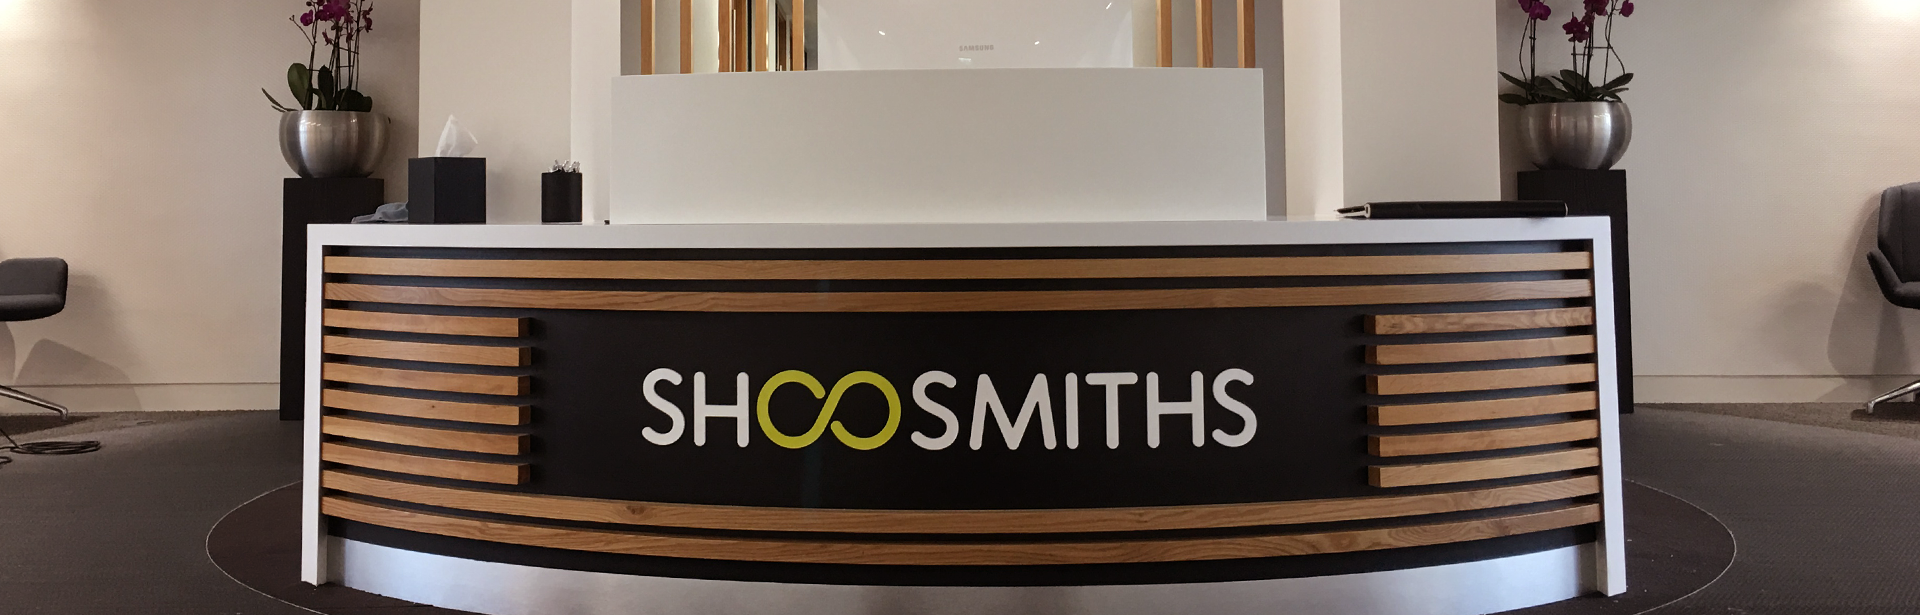 Shoosmiths Stand Off Reception Desk Sign